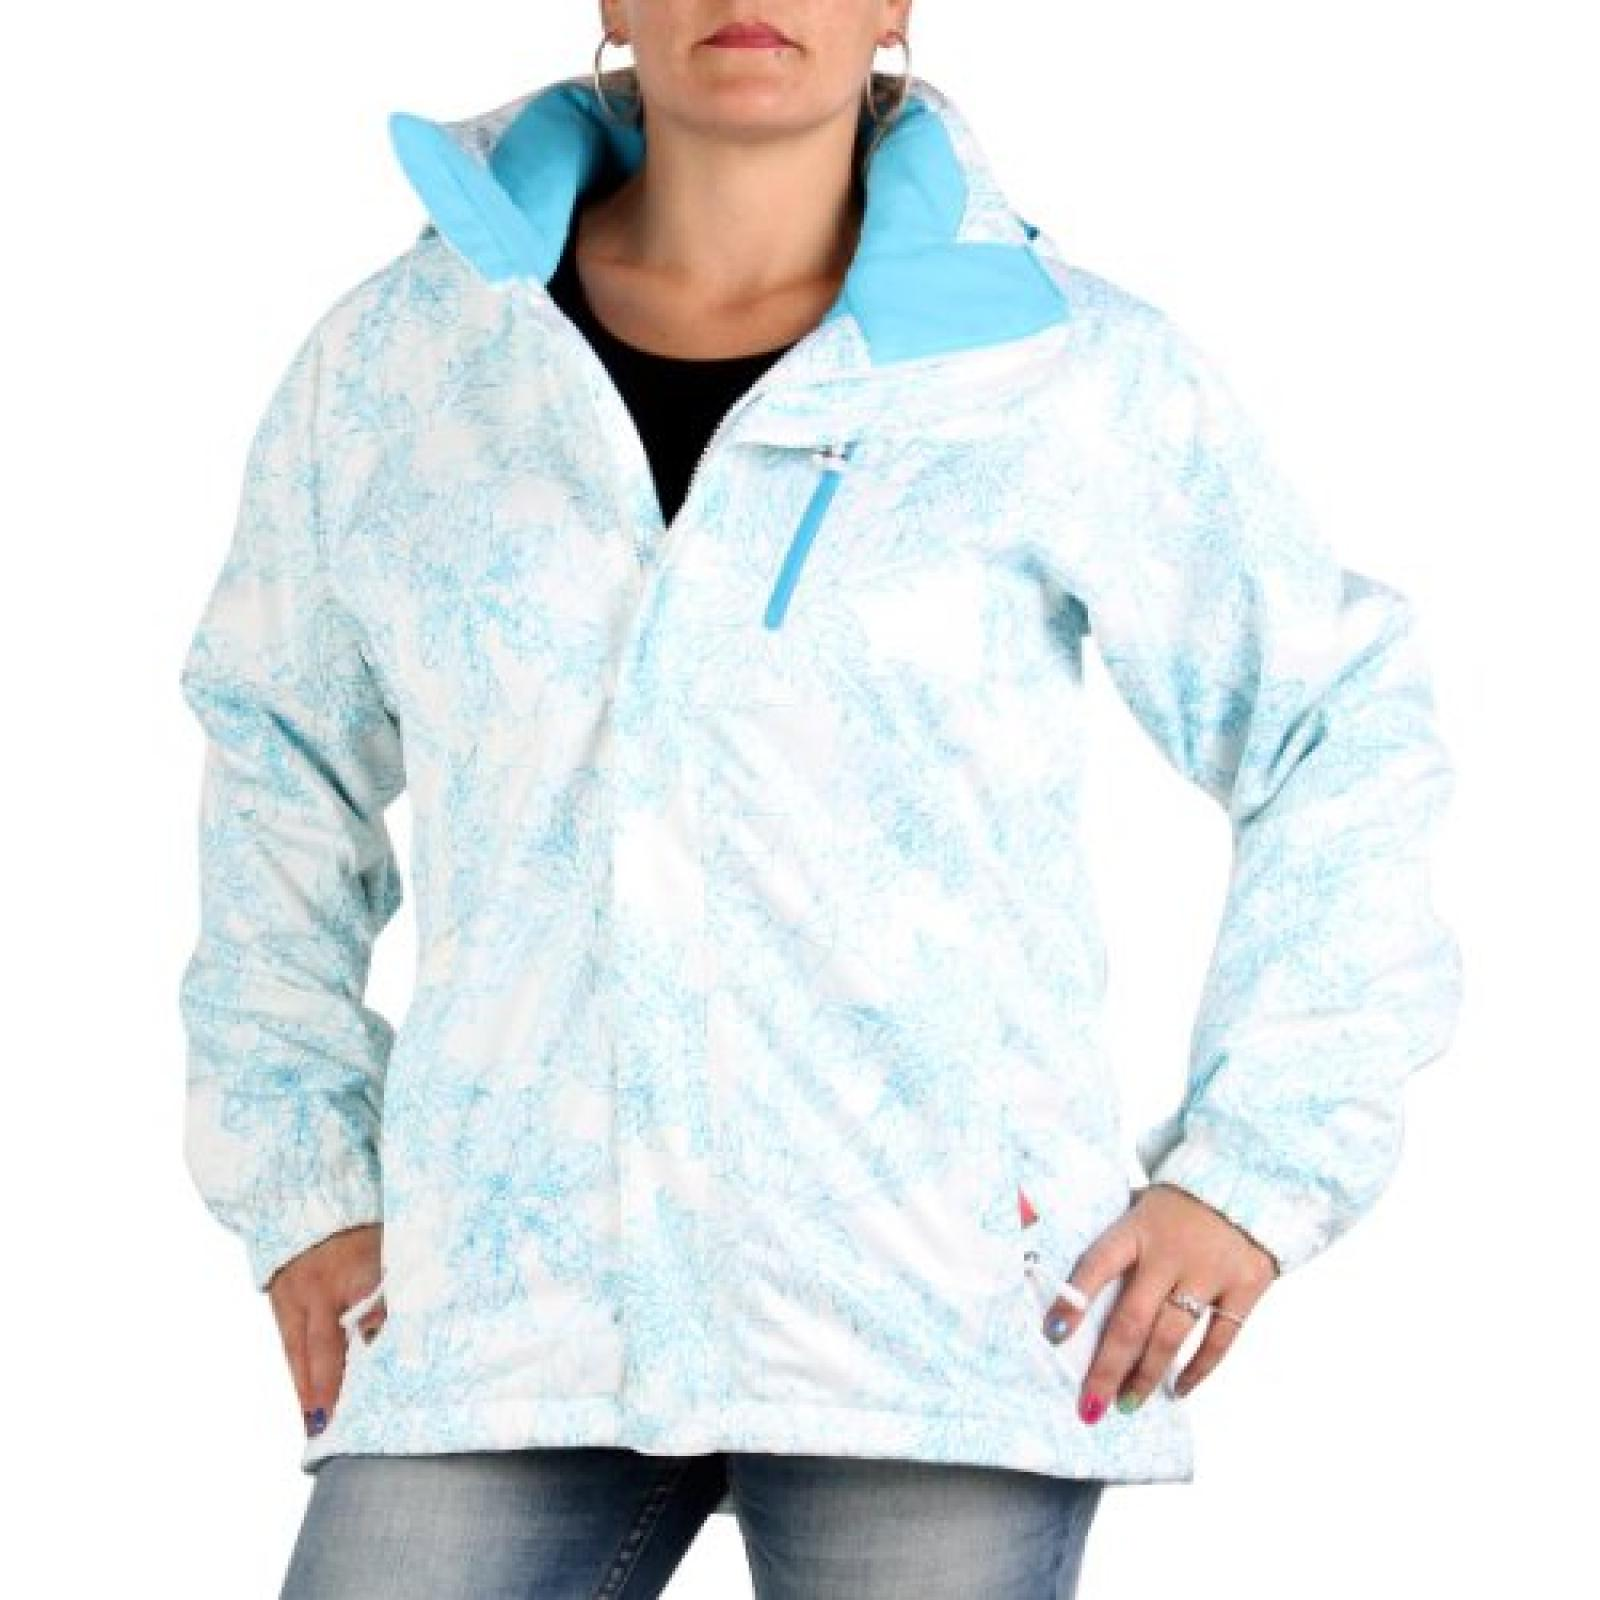 THE NORTH FACE Damen Funktions- Skijacke Snow Cougar Print White